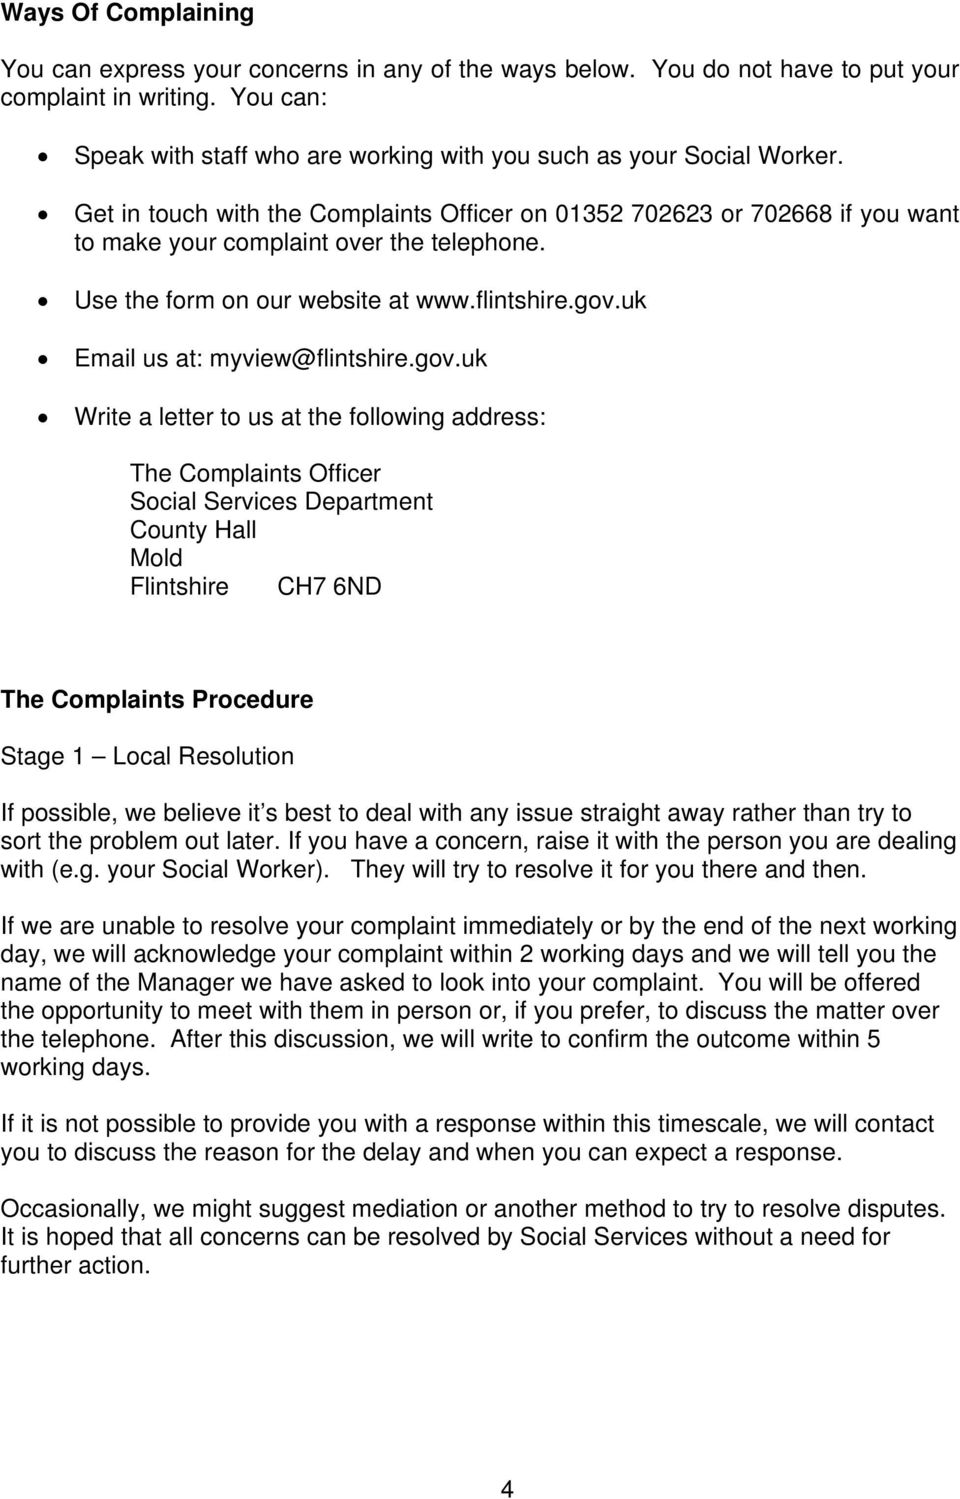 Use the form on our website at www.flintshire.gov.